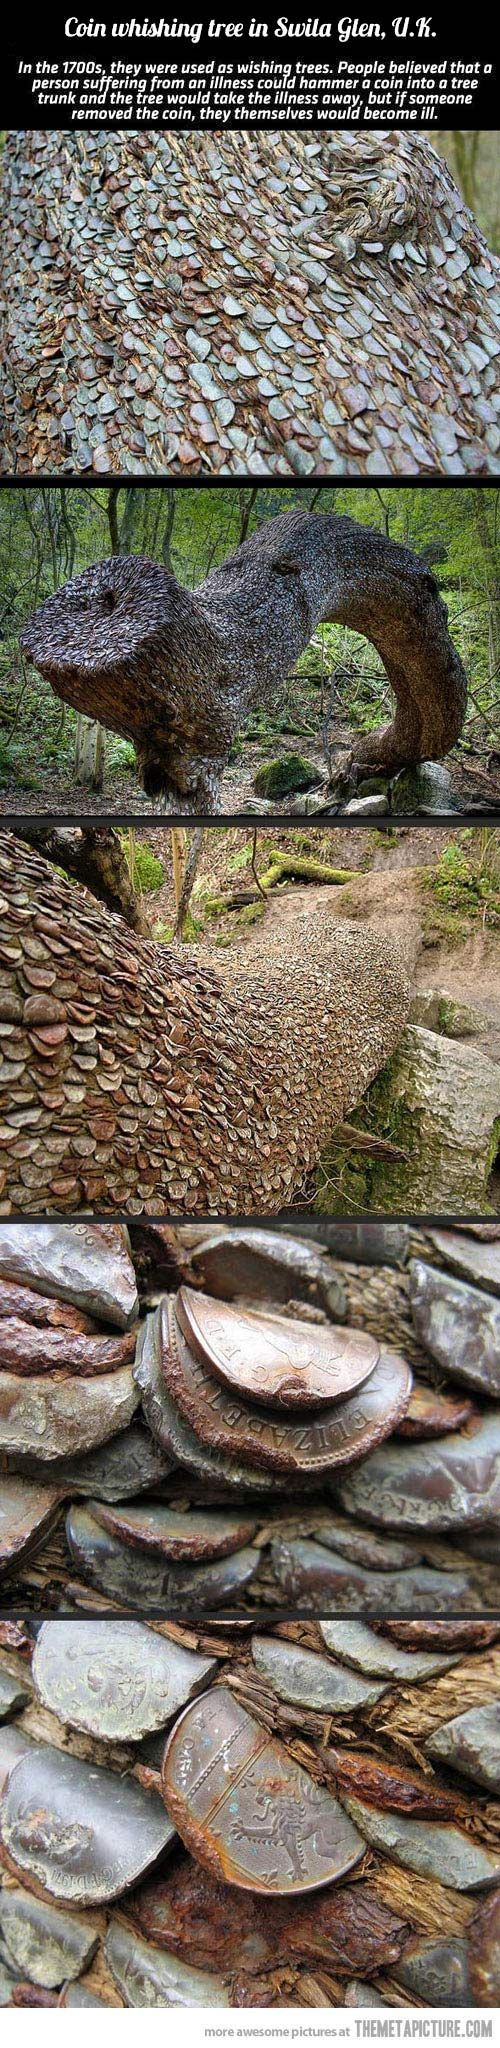 Britain's Coin wishing tree…People believed that a person suffering from an illness could hammer a coin into a tree trunks and the tree would take the illness away, but if someone removed the coin, they themselves would become ill.